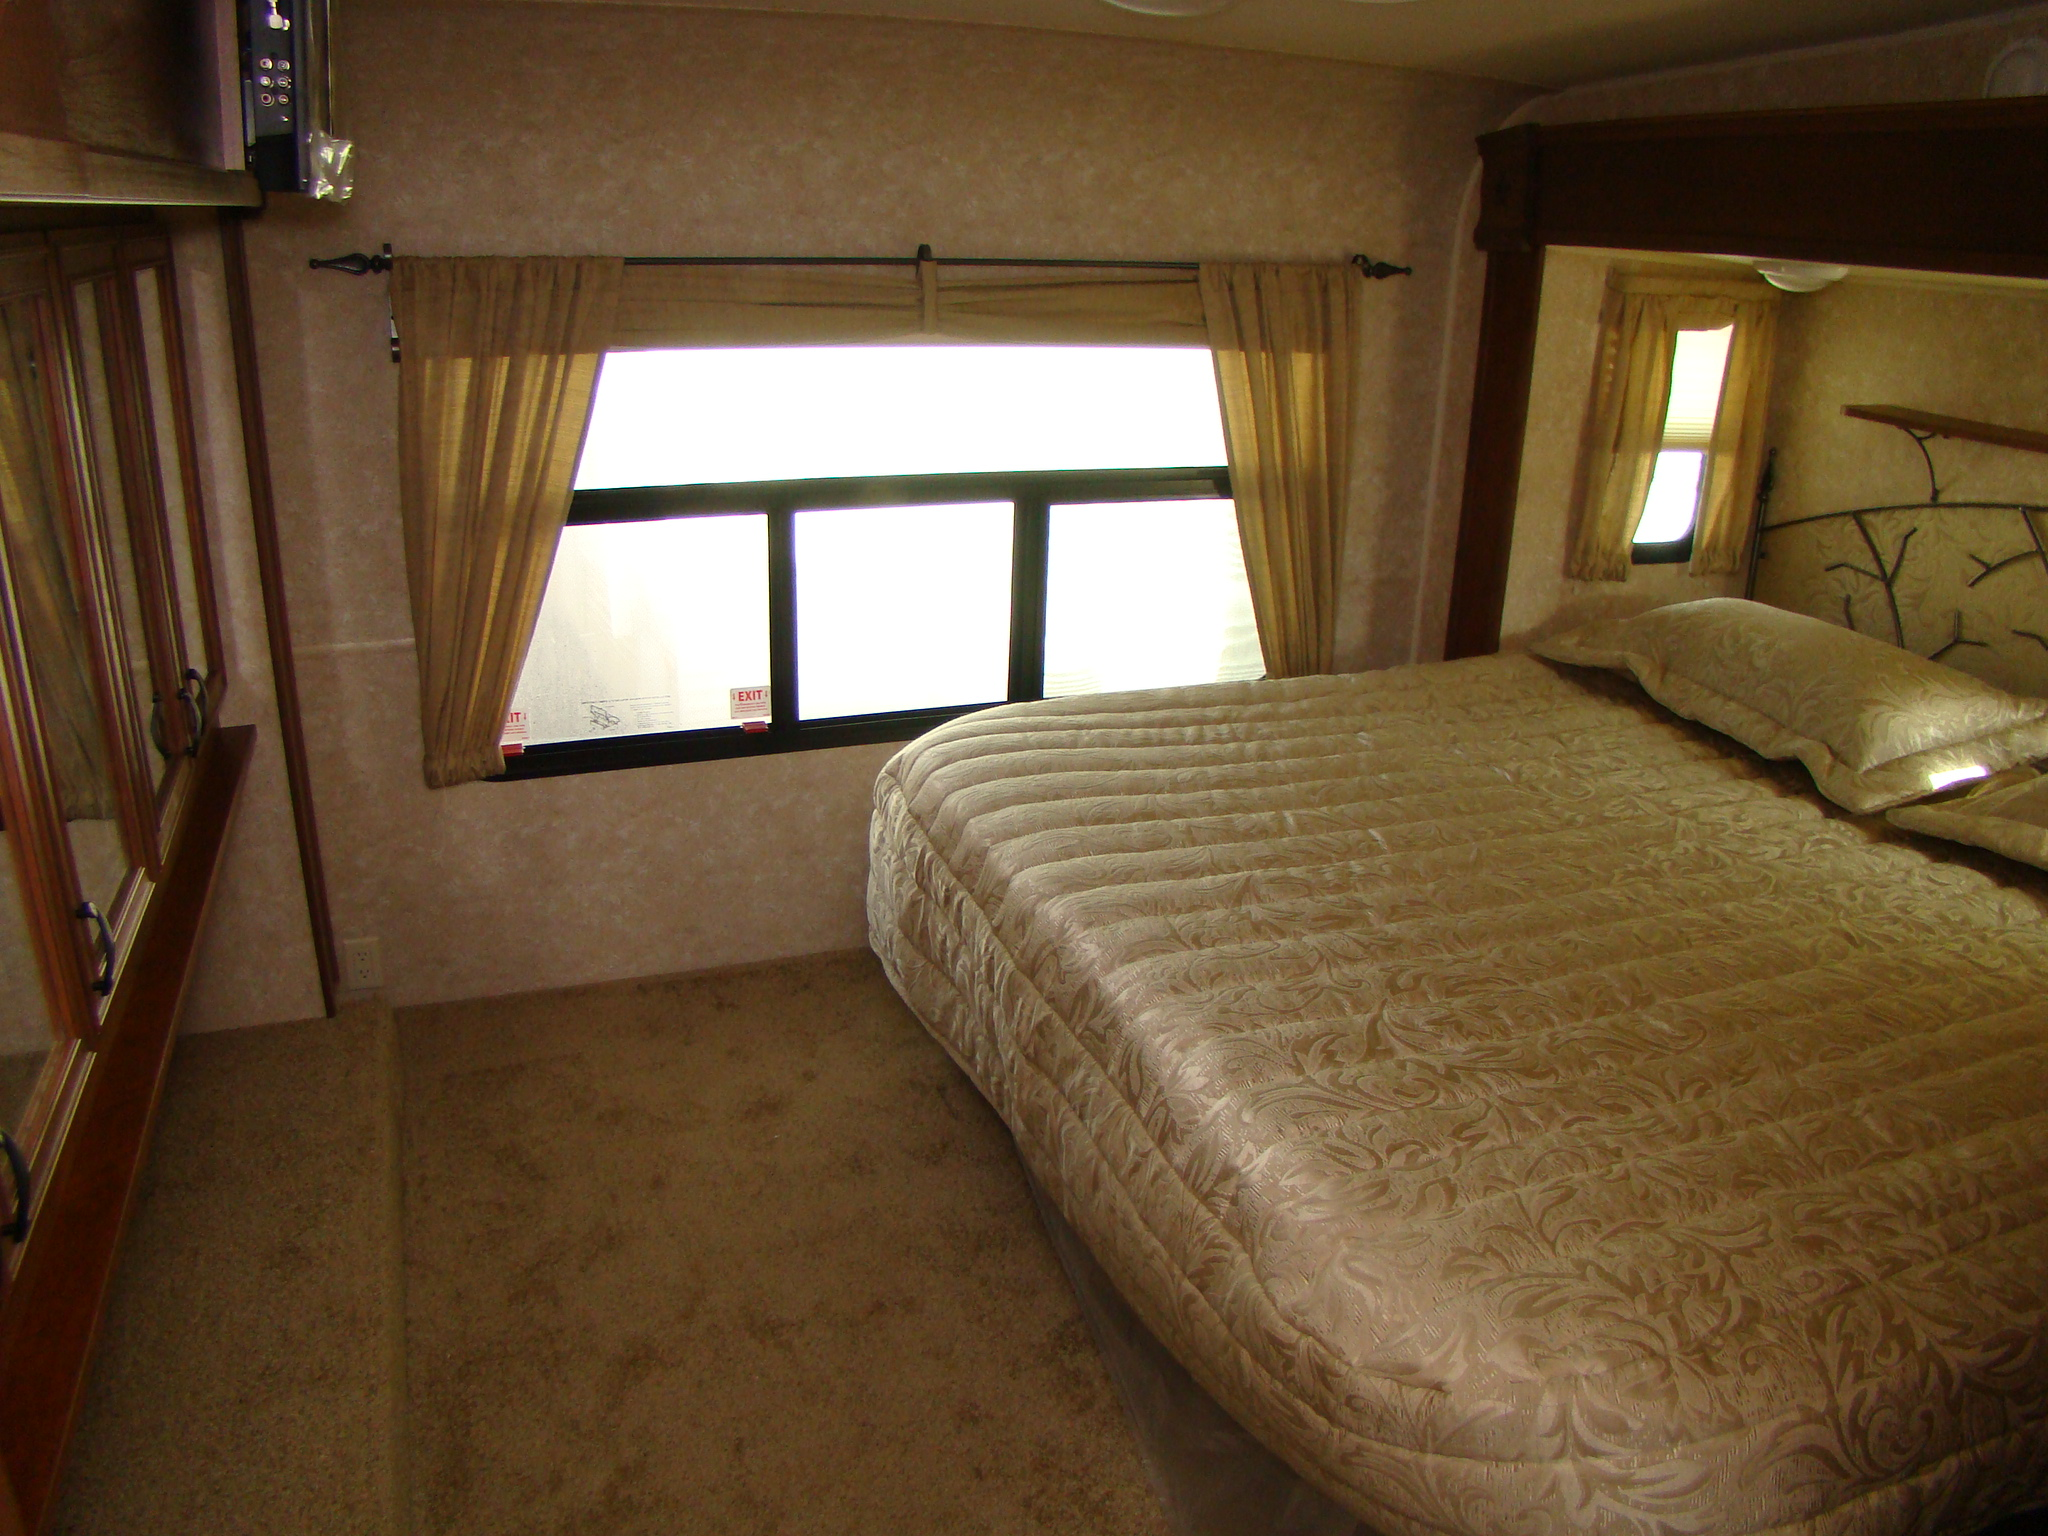 Open range rving is easy at lerch rv - Trailer bedroom ideas ...